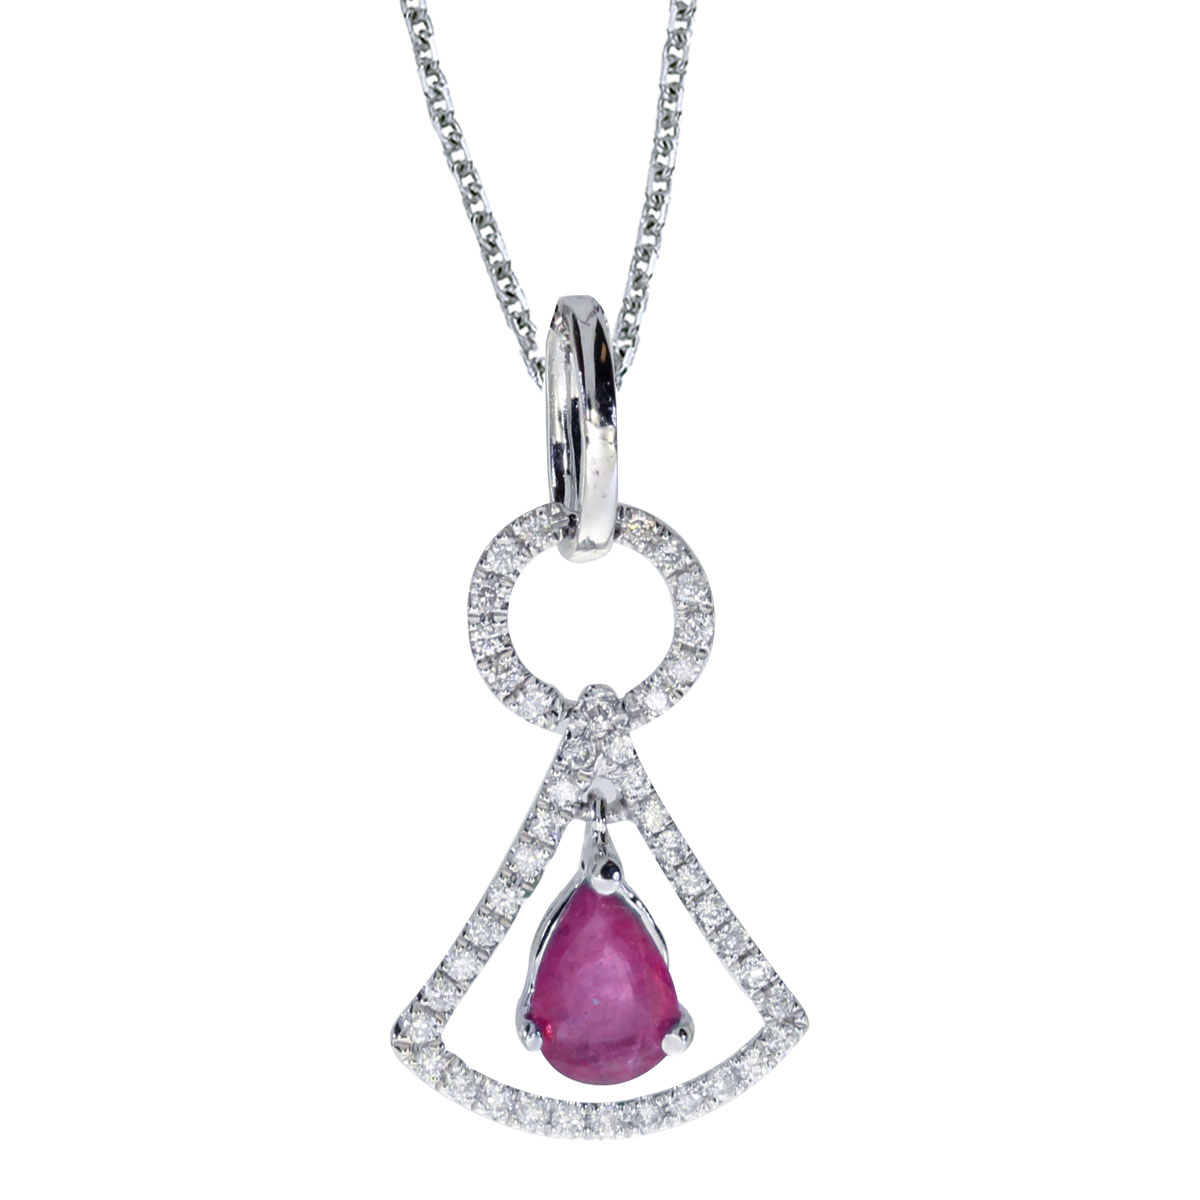 This unique 14k white gold  pendant features  a striking 6x4 mm pear ruby and .16 carats of shimm...